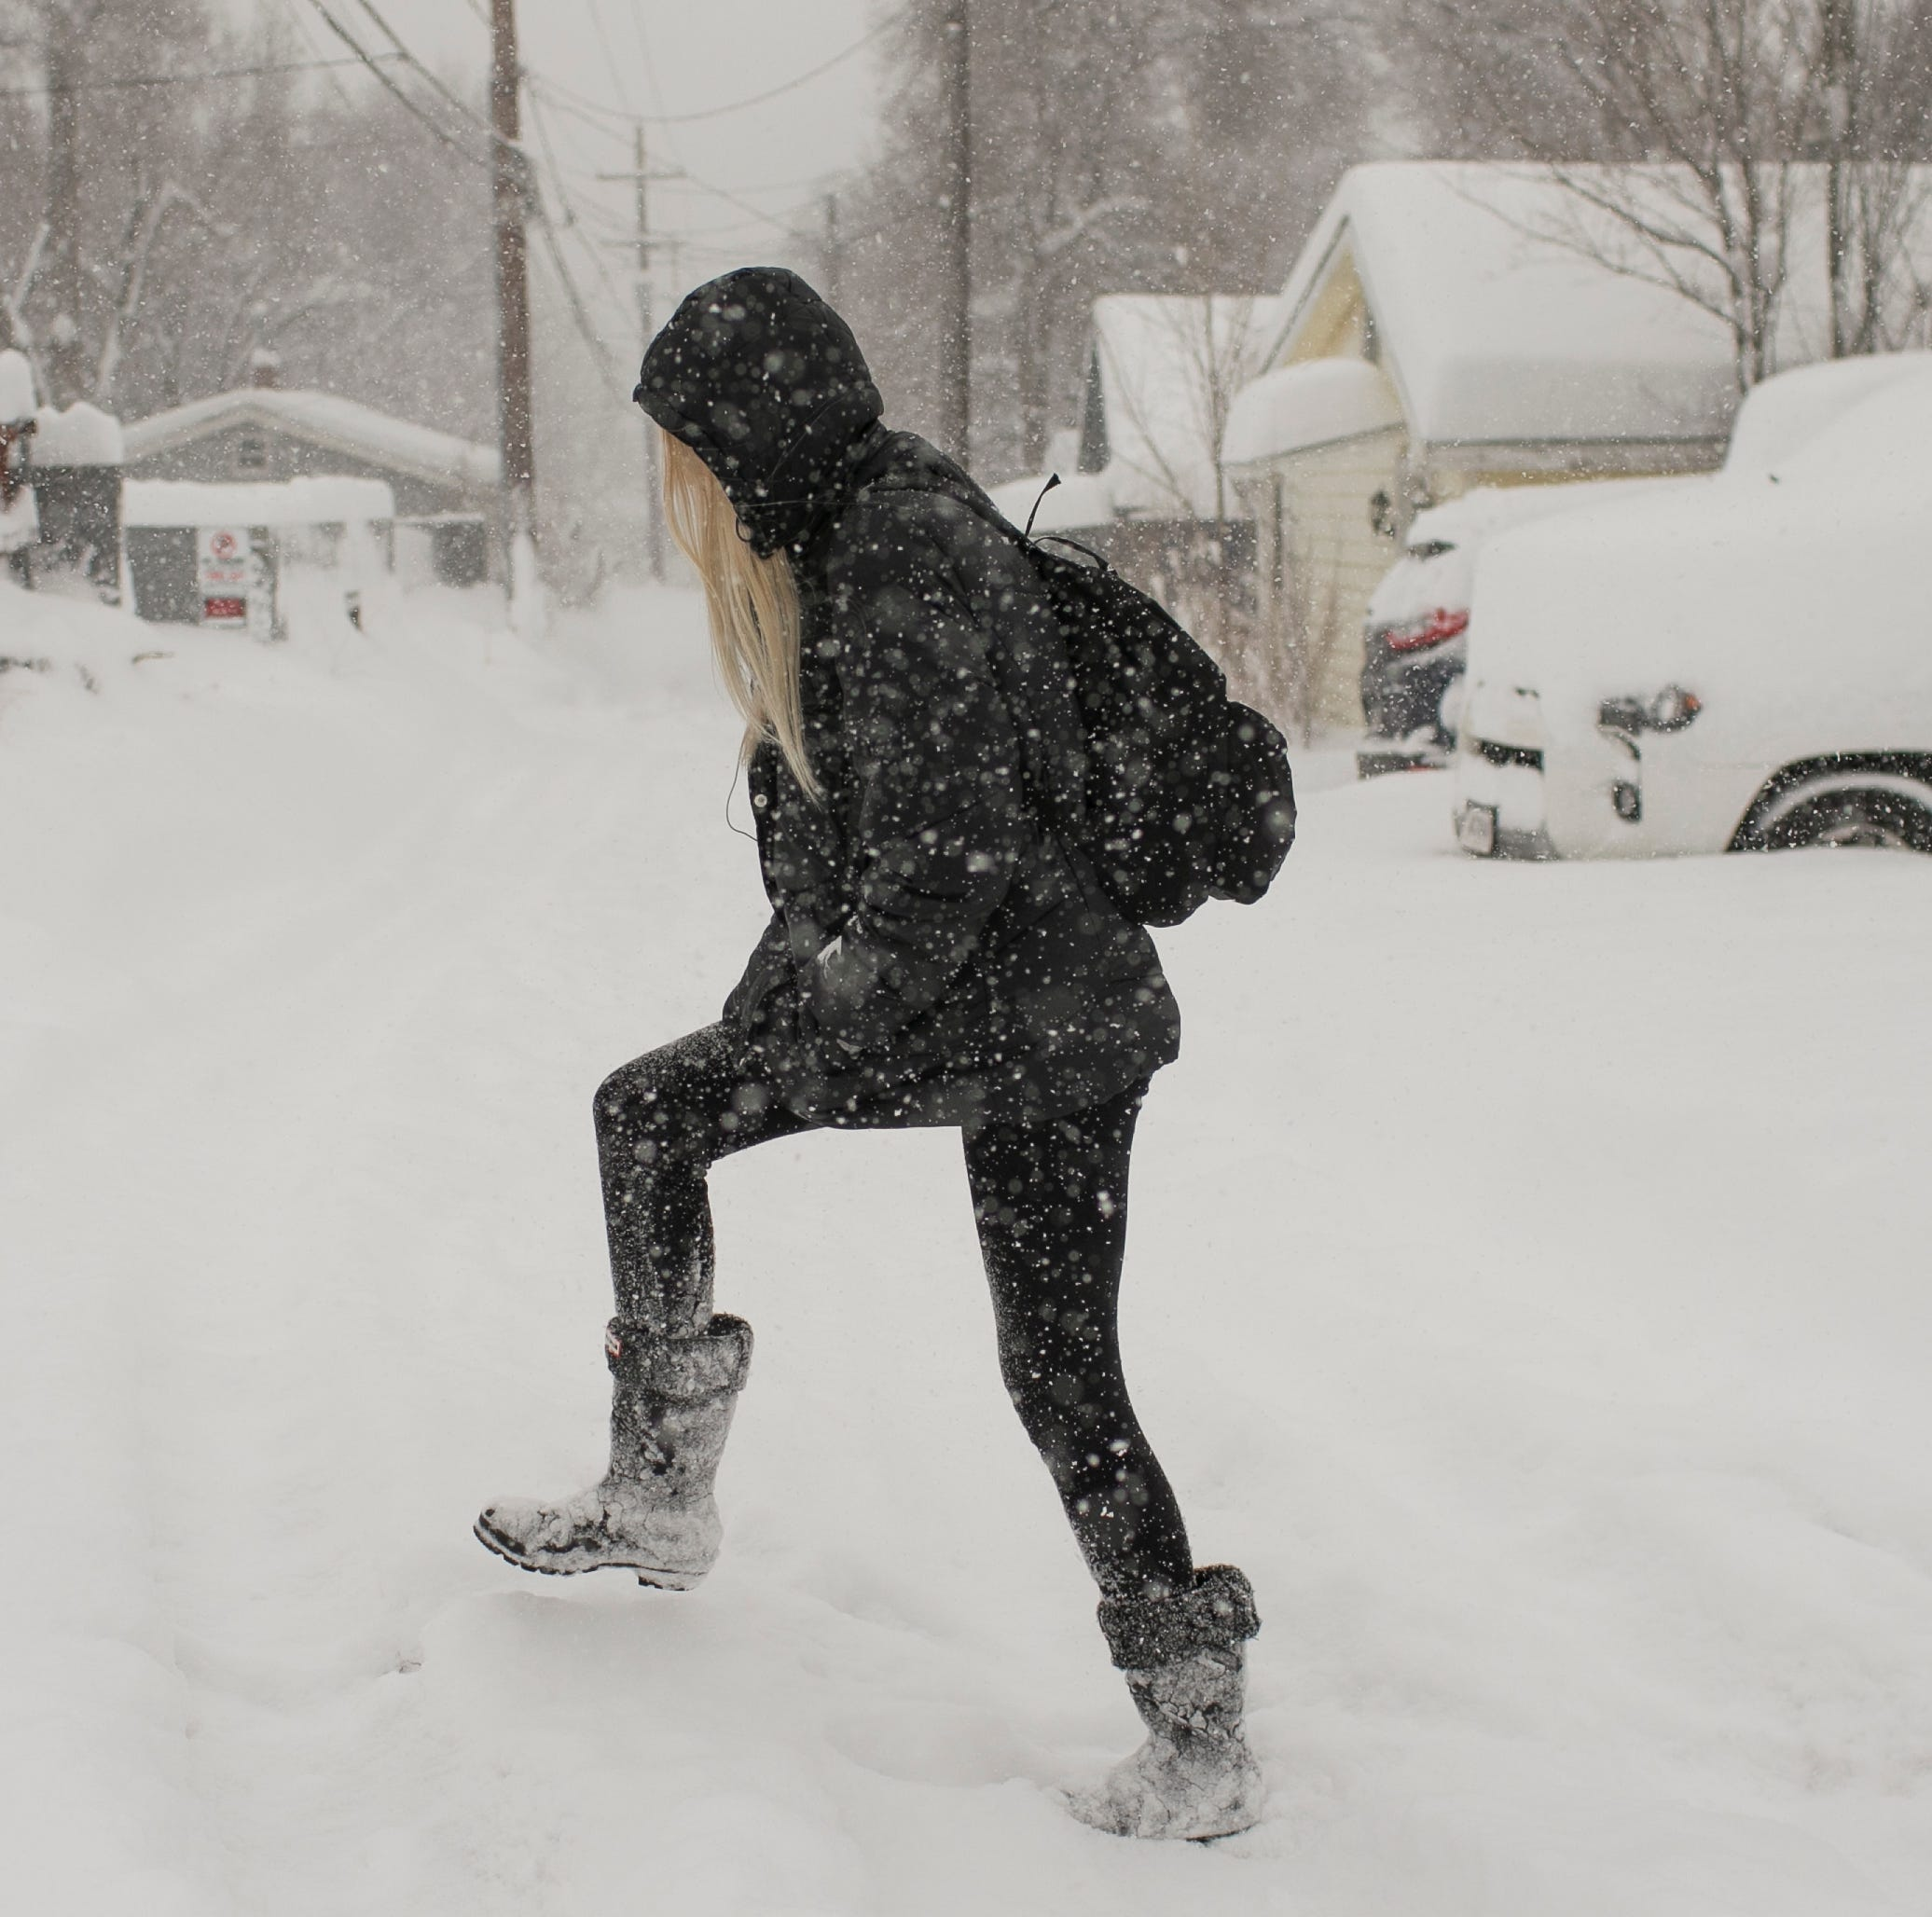 Arizona storm updates: Schools, NAU closed again; winter storm warning in effect